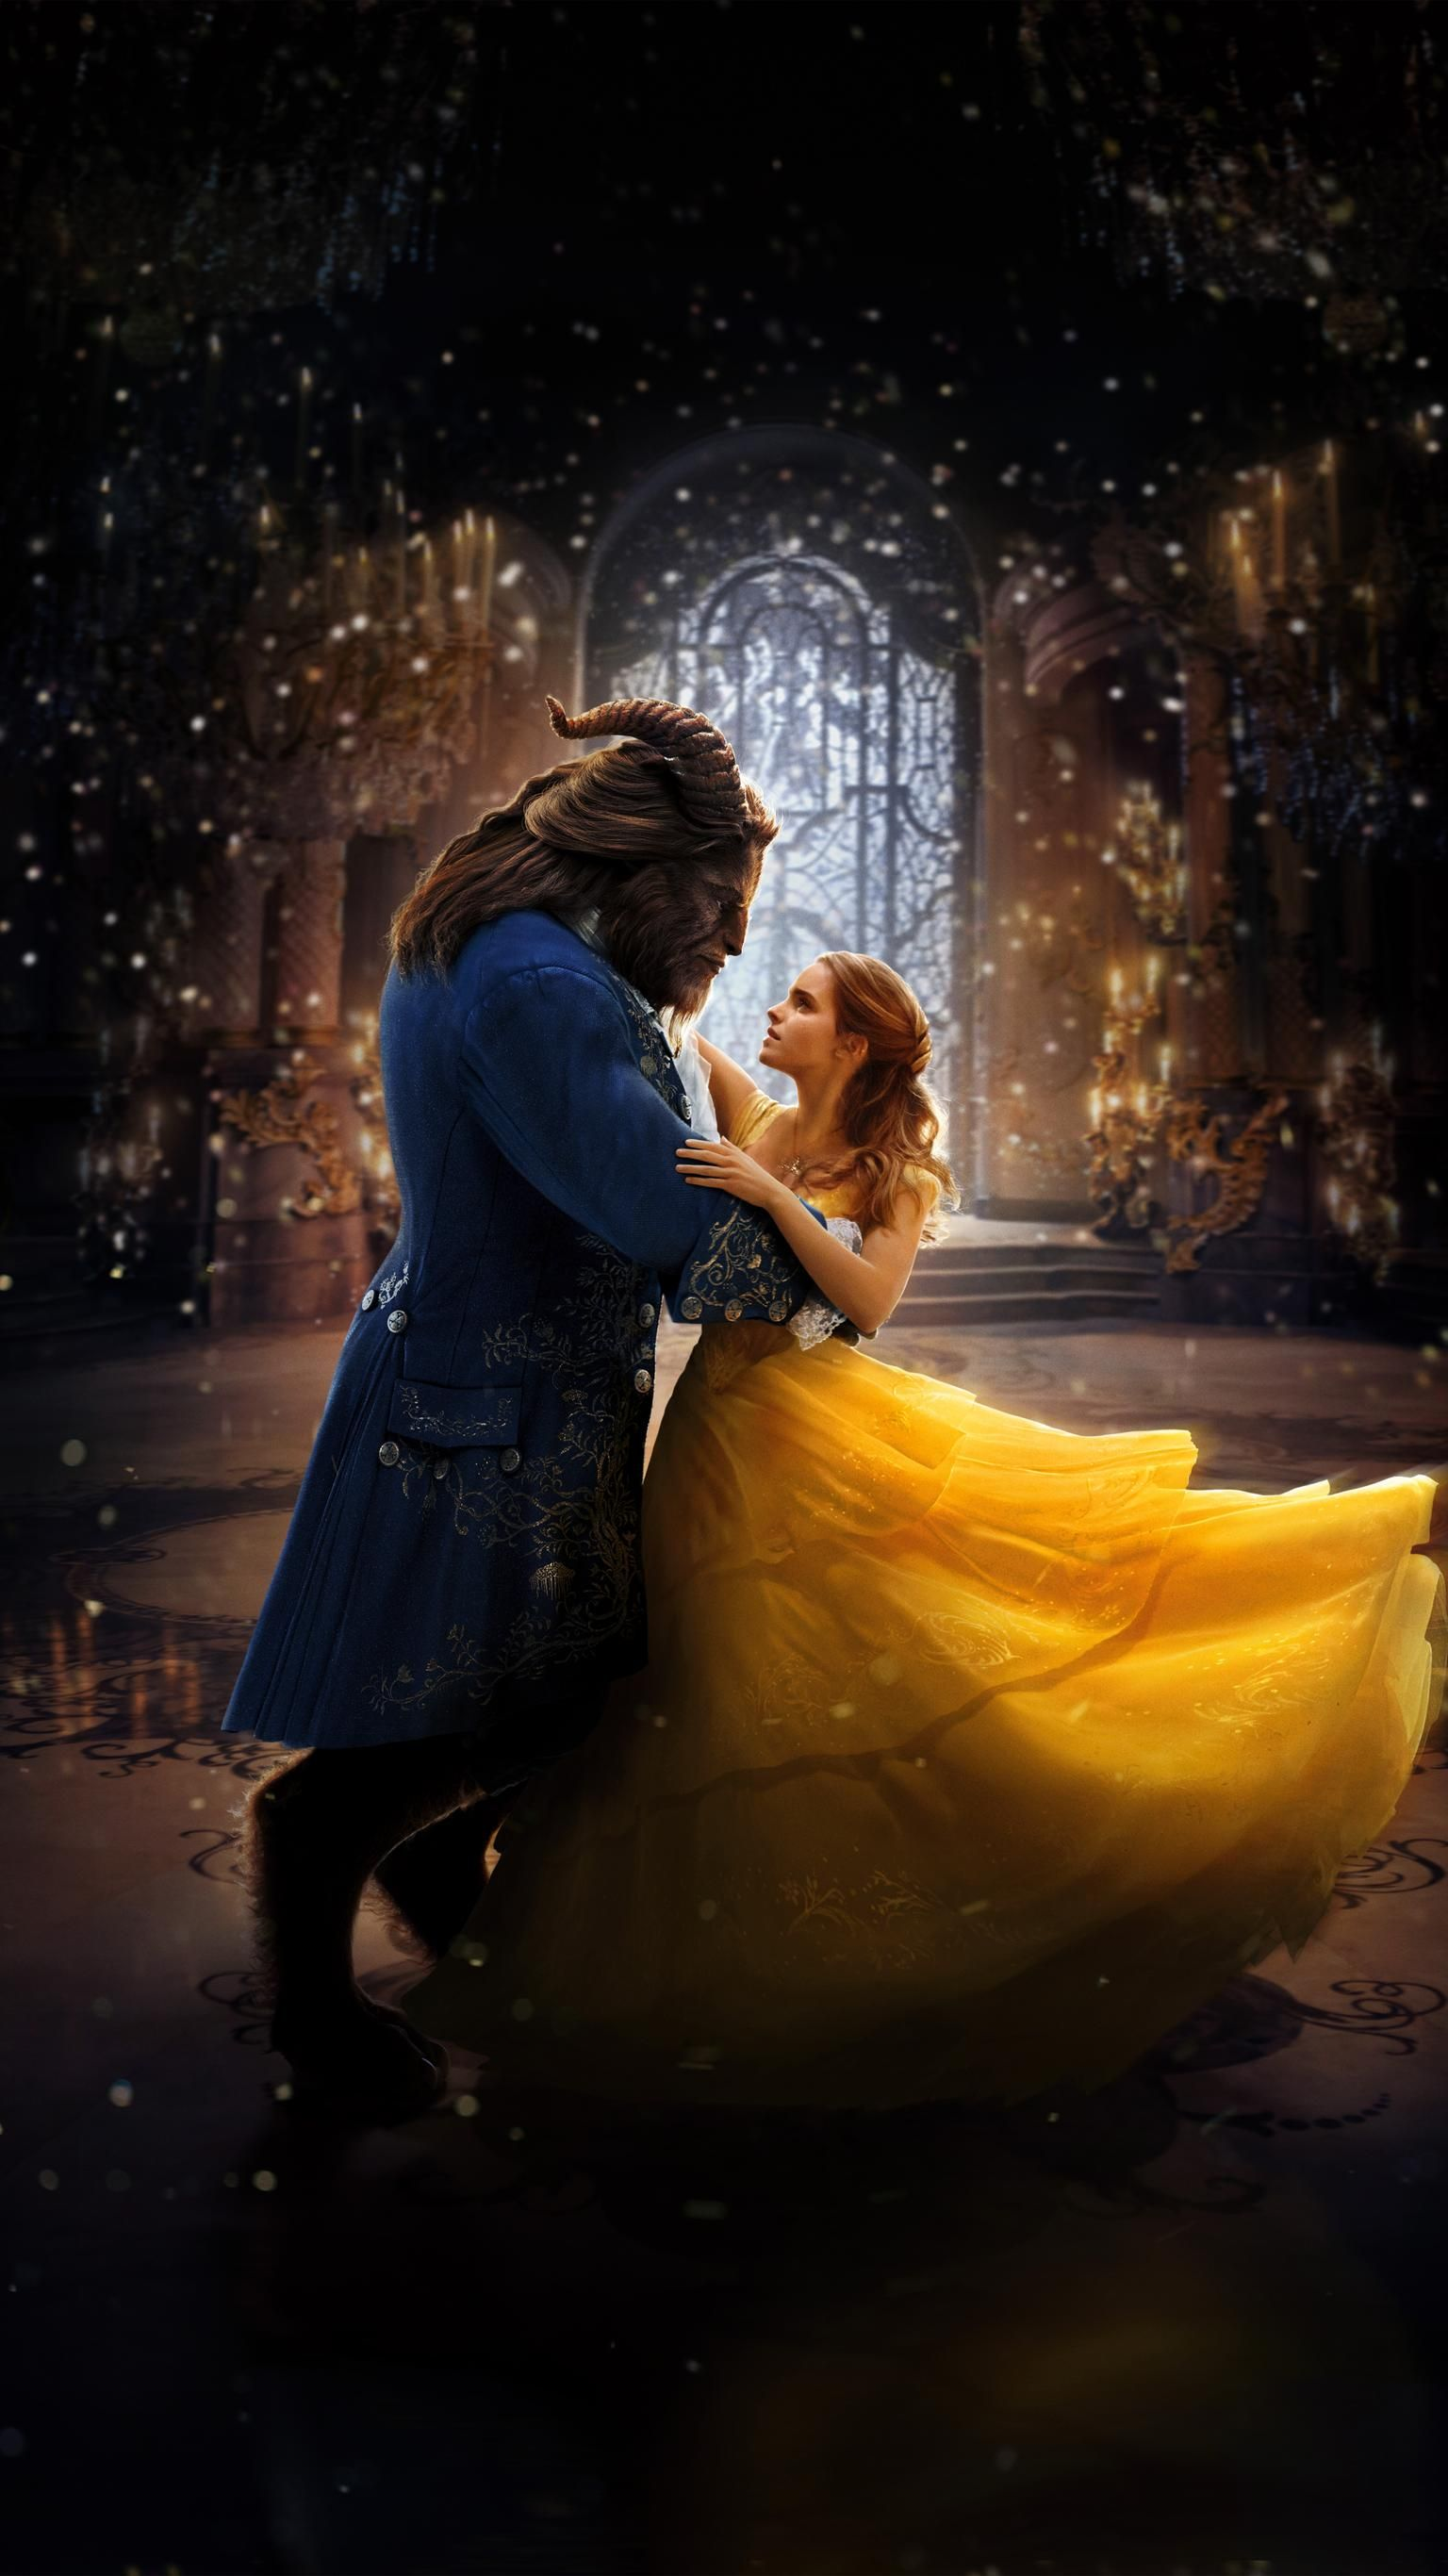 Beauty and the Beast (2017) Phone Wallpaper Beauty and